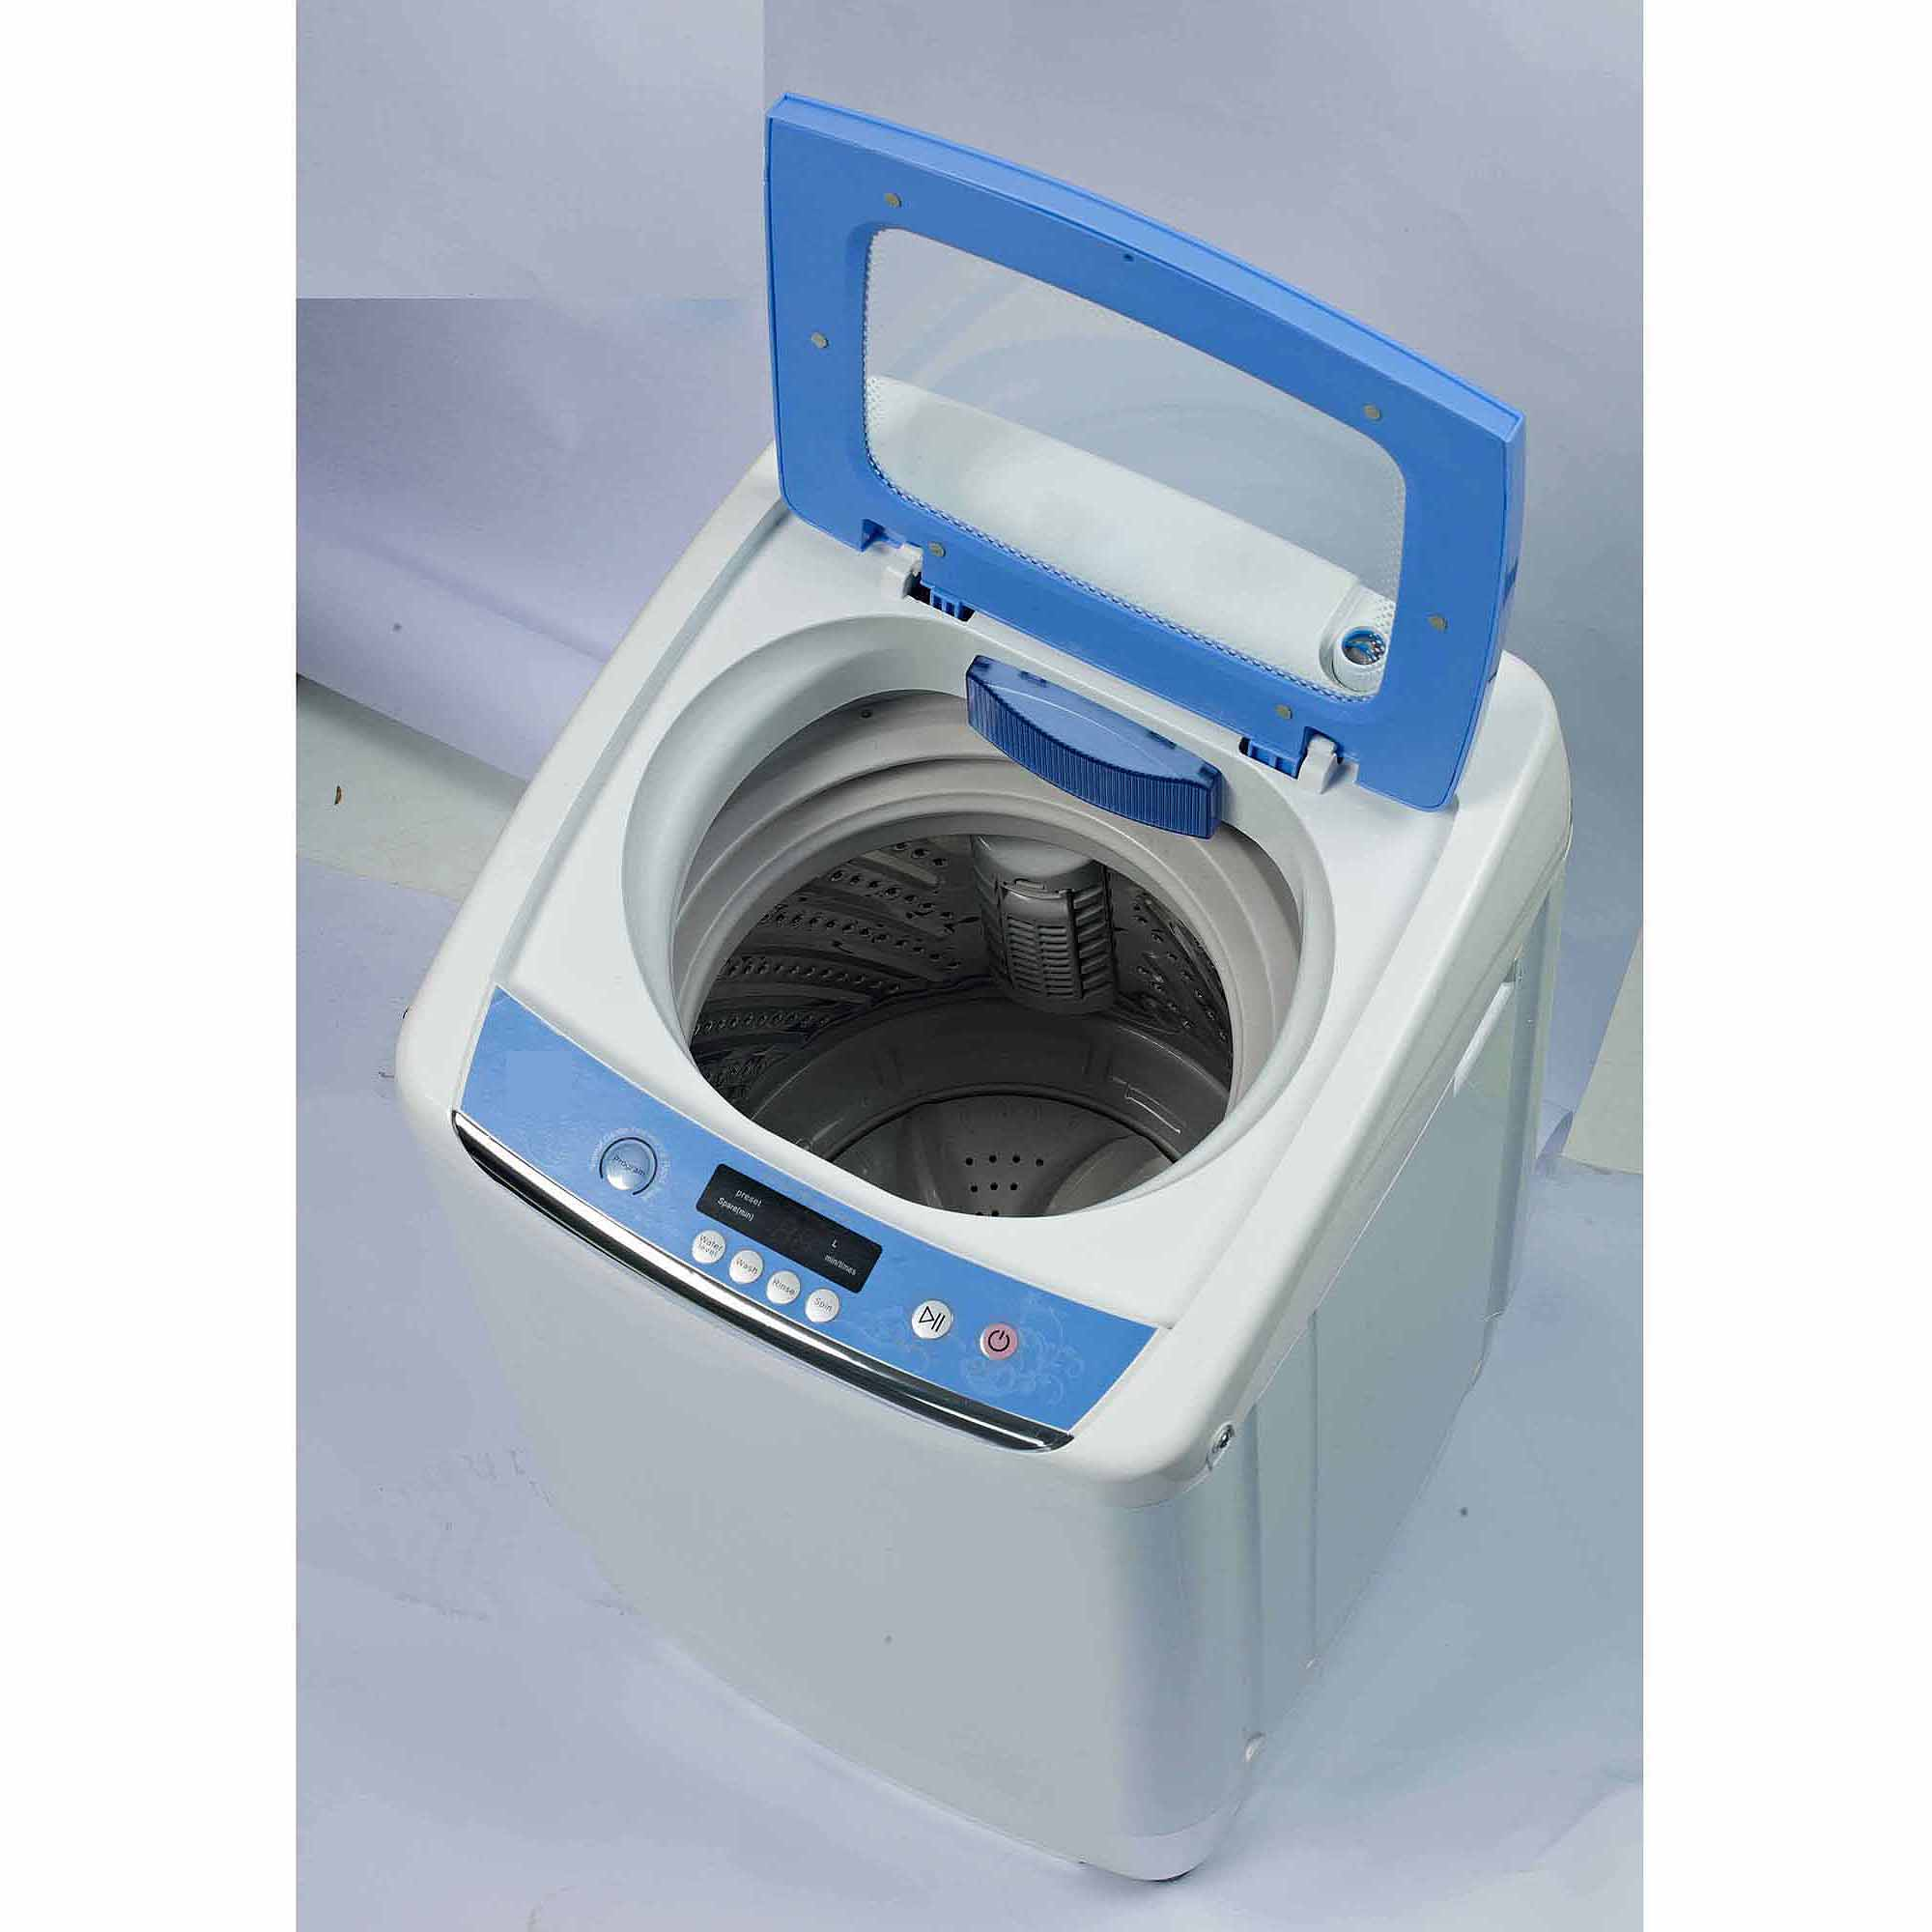 RCA 0.9 cu ft Portable Washer, White Image 1 of 2